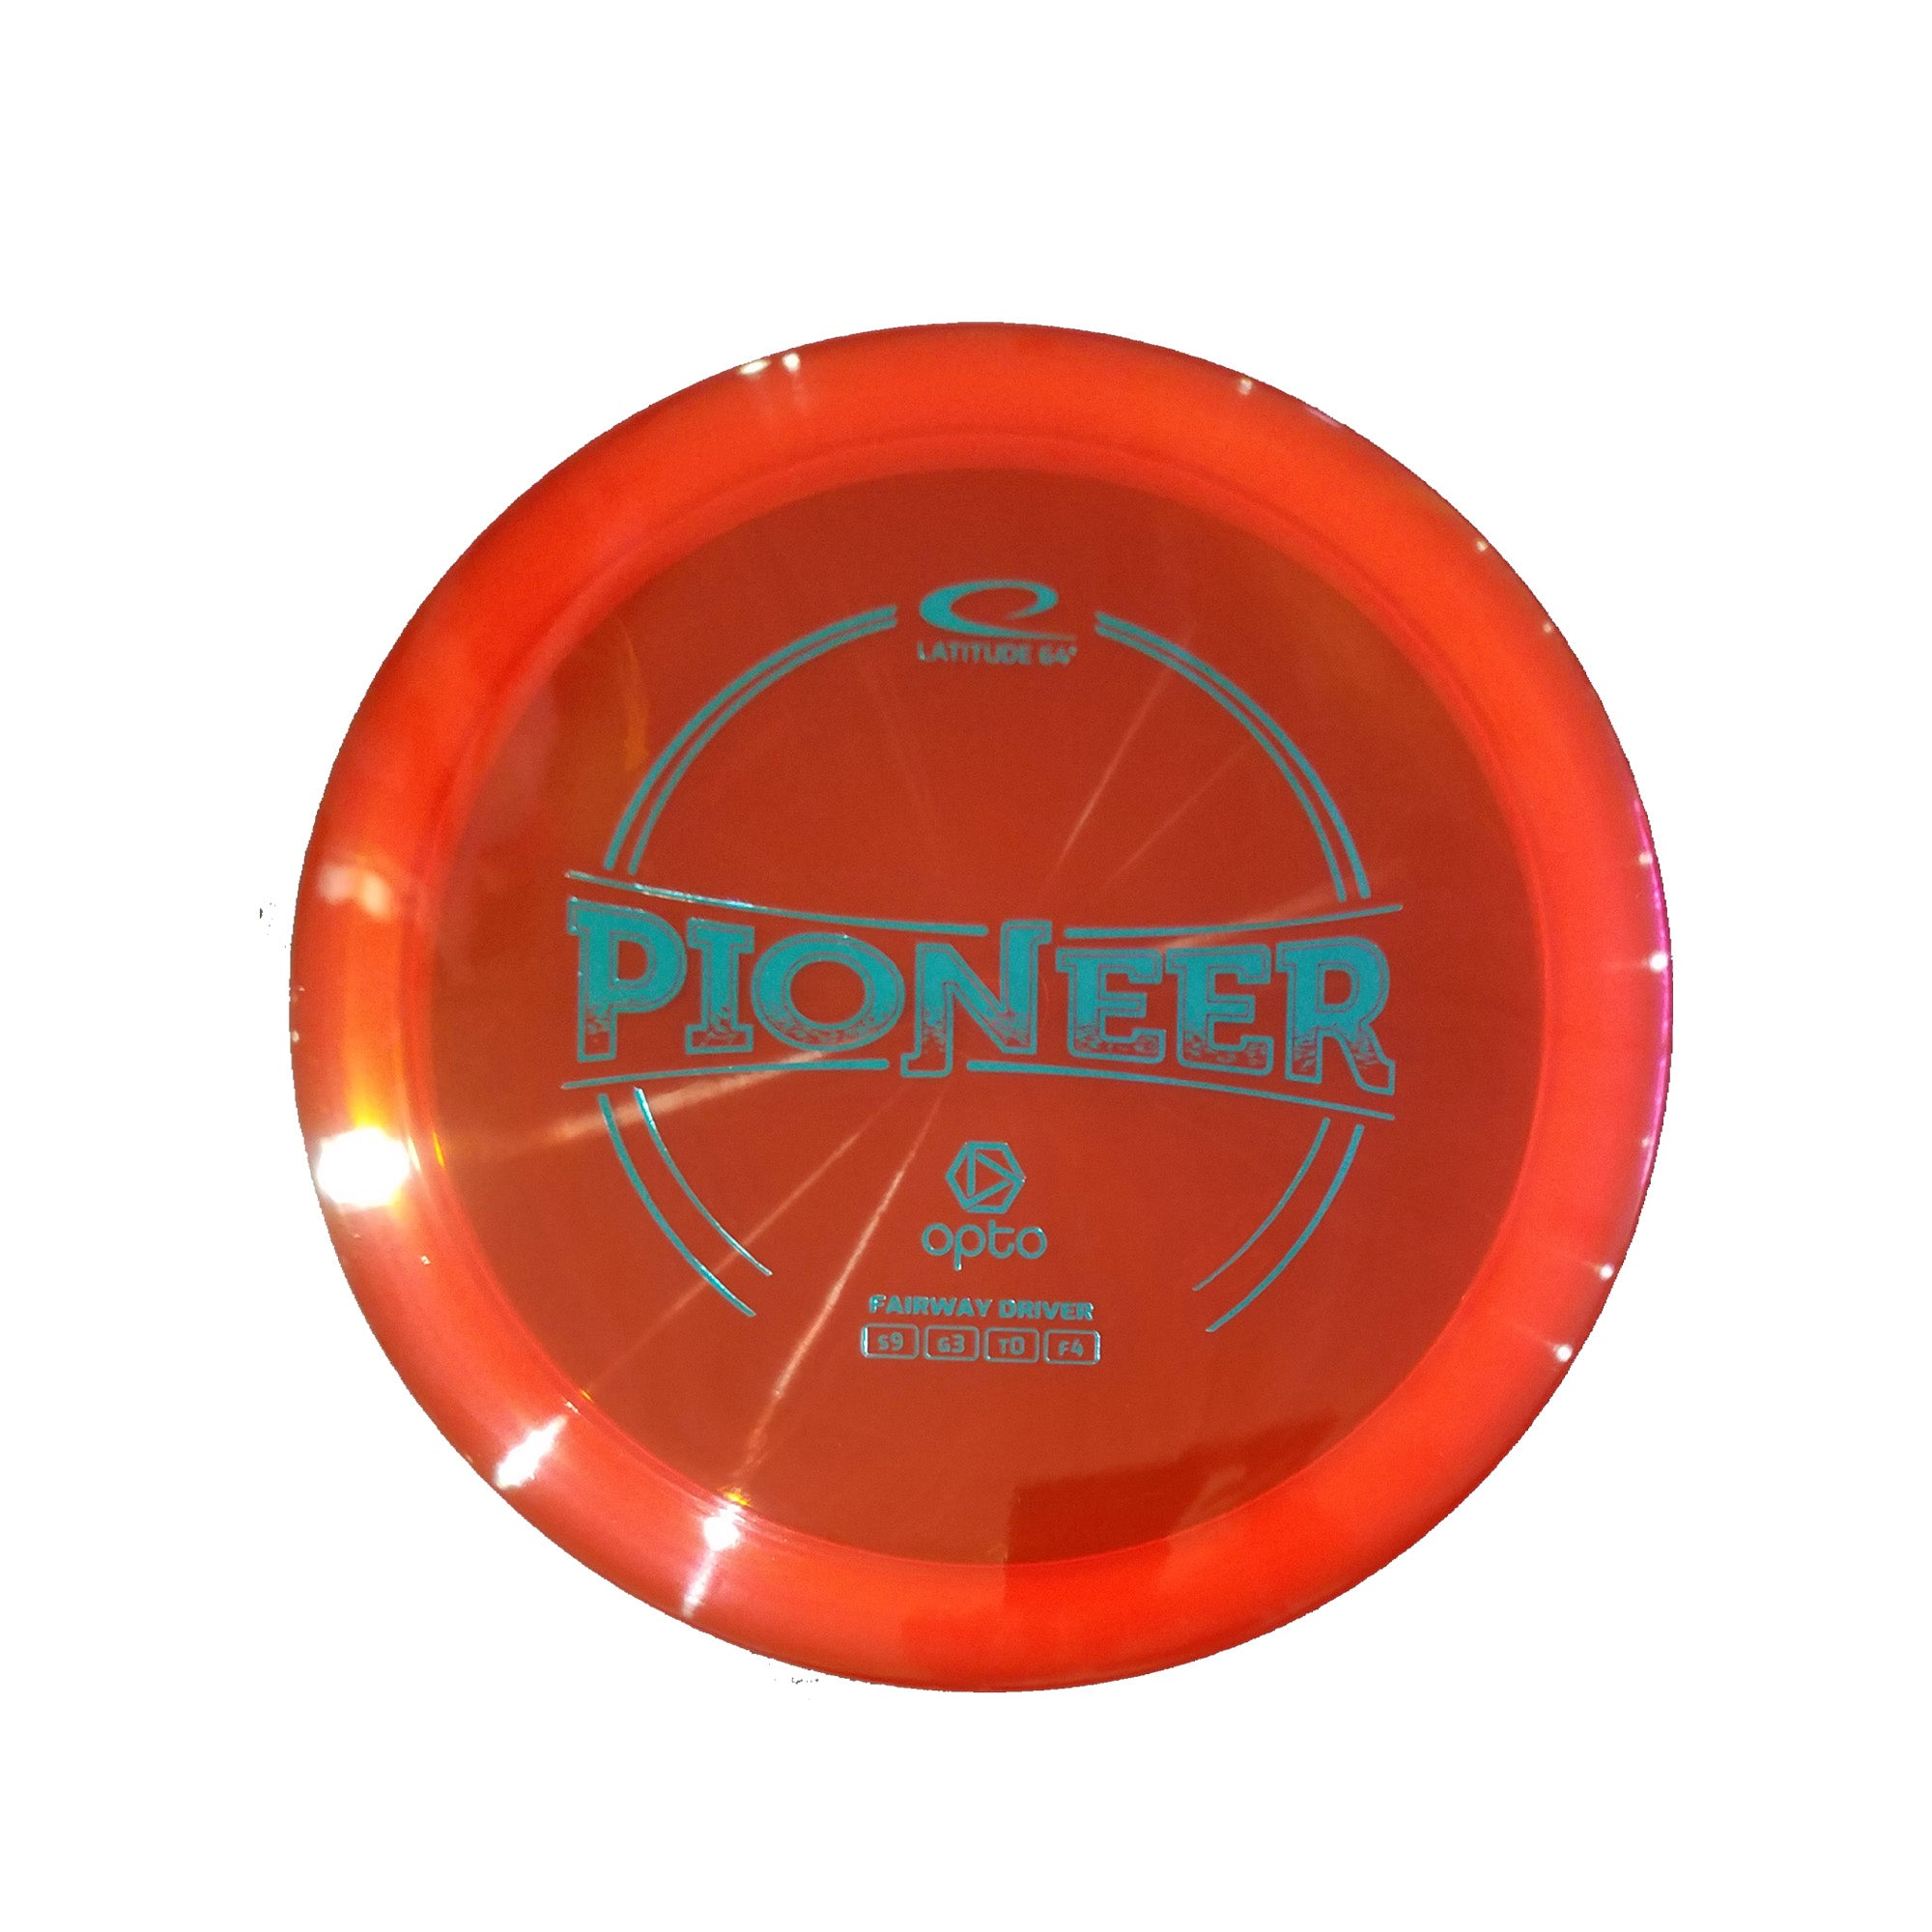 Latitude 64 Opto Pioneer Fairway Driver Disc - 169g